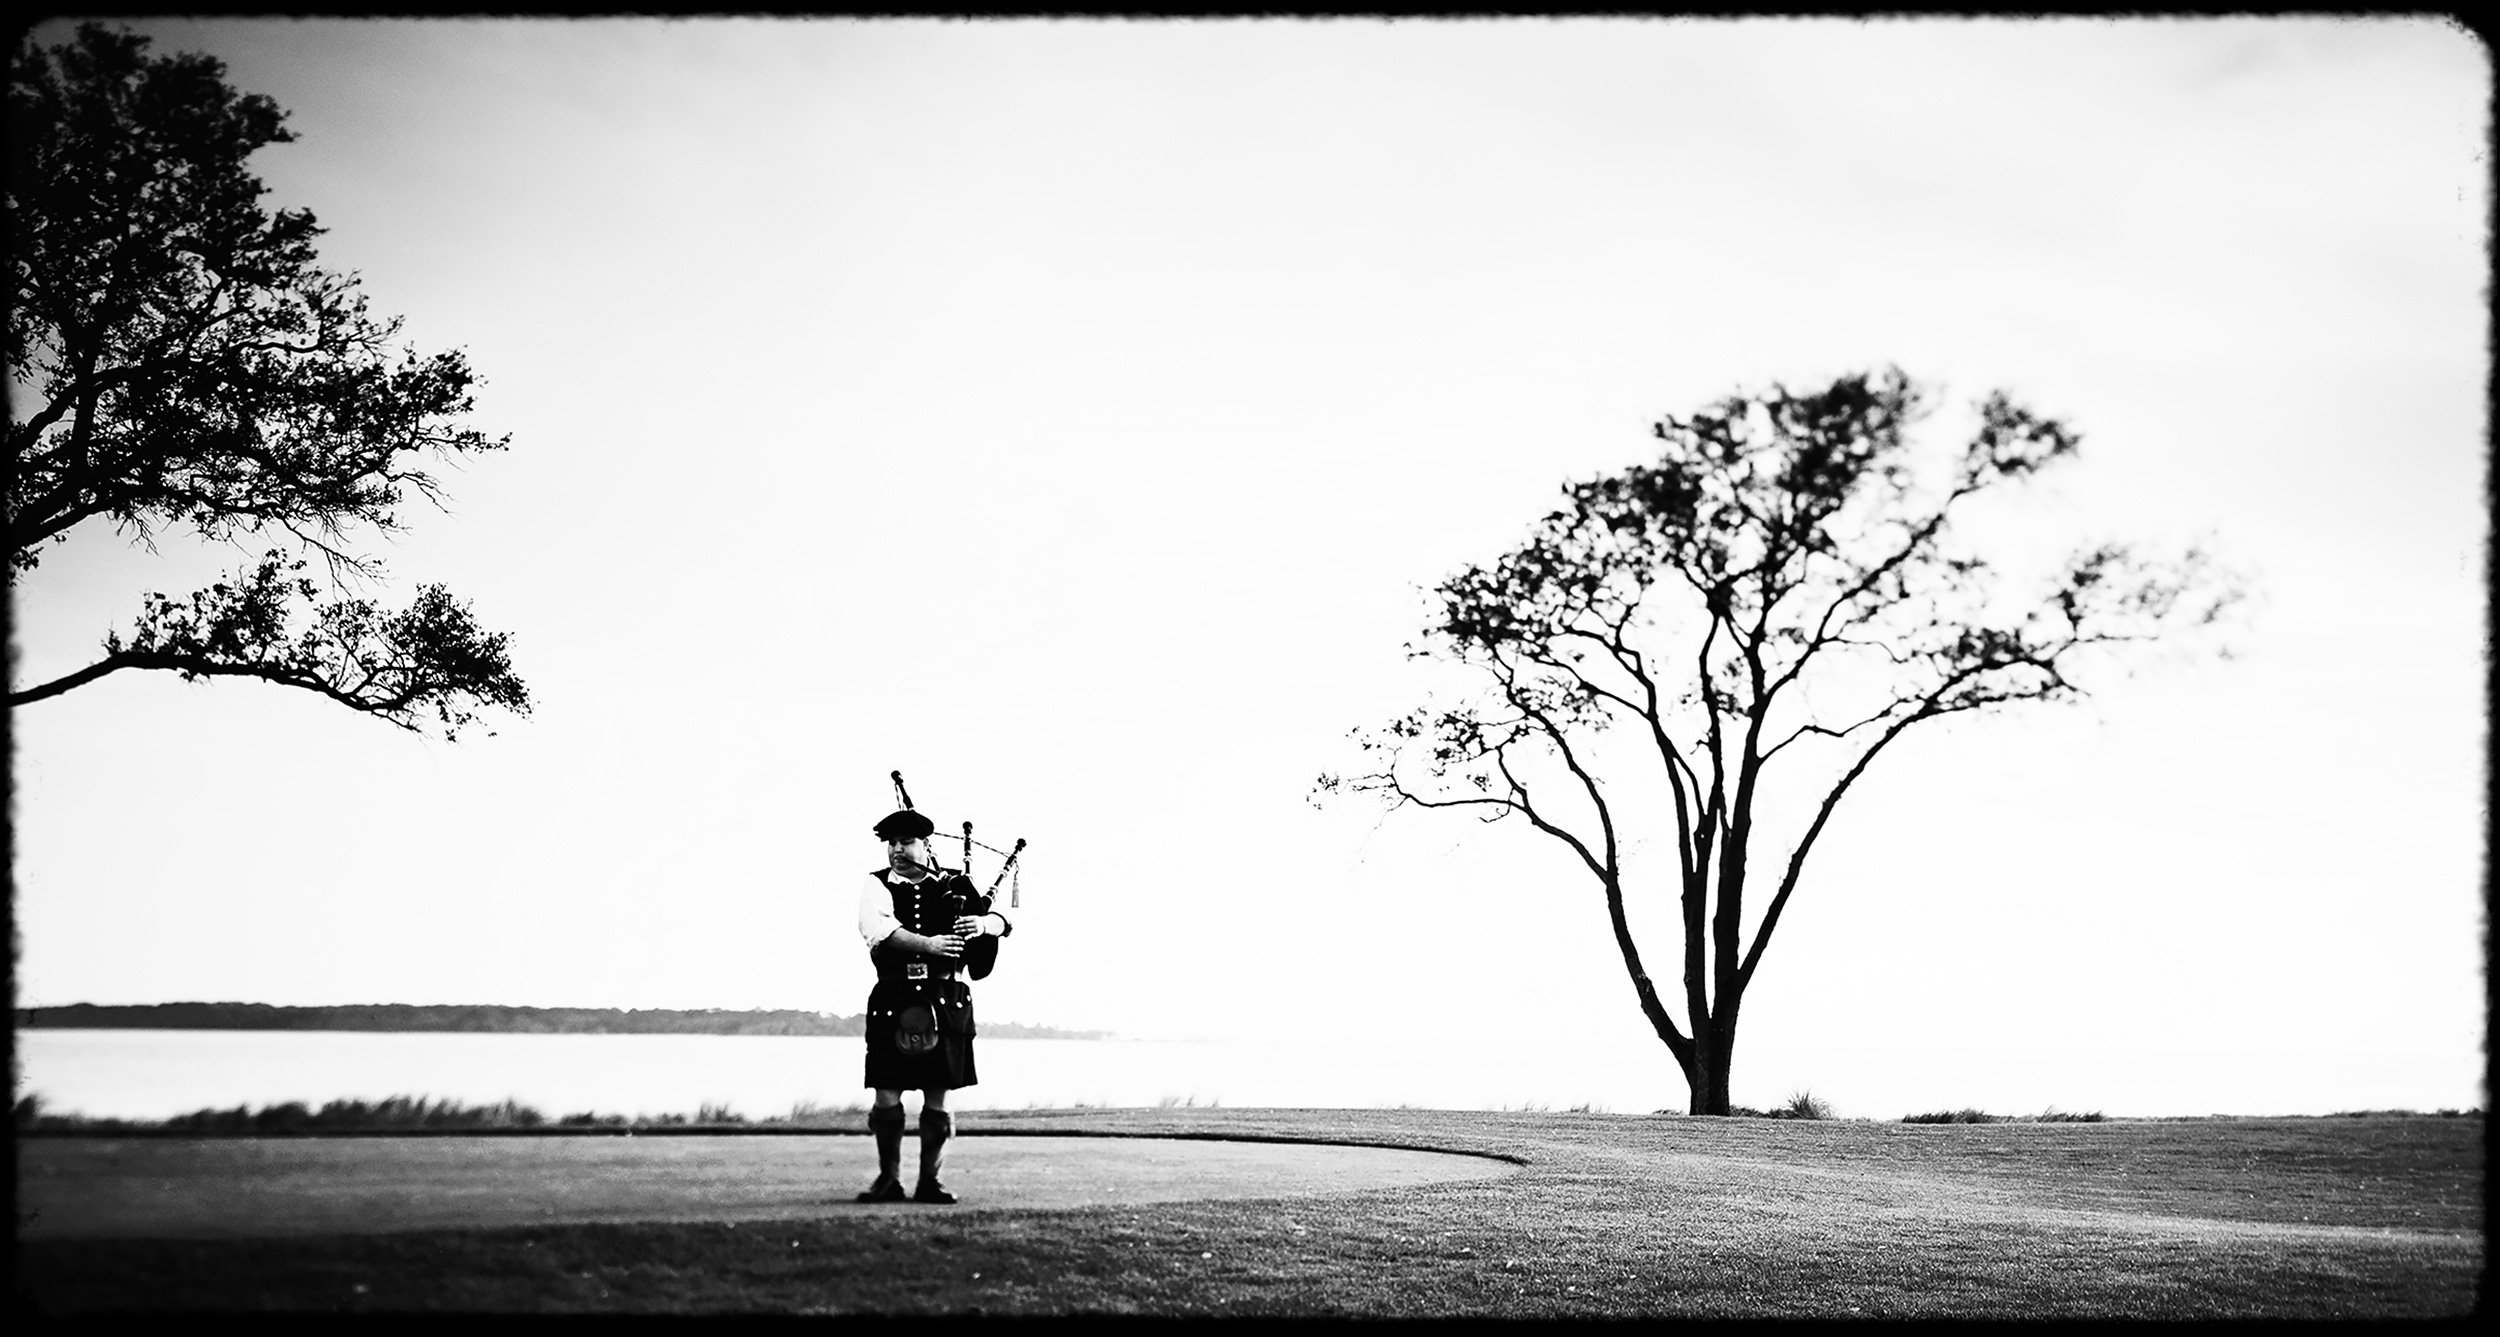 Bagpiper playing the bagpipes on the 18th green at a golf course in Sea Island, Georgia